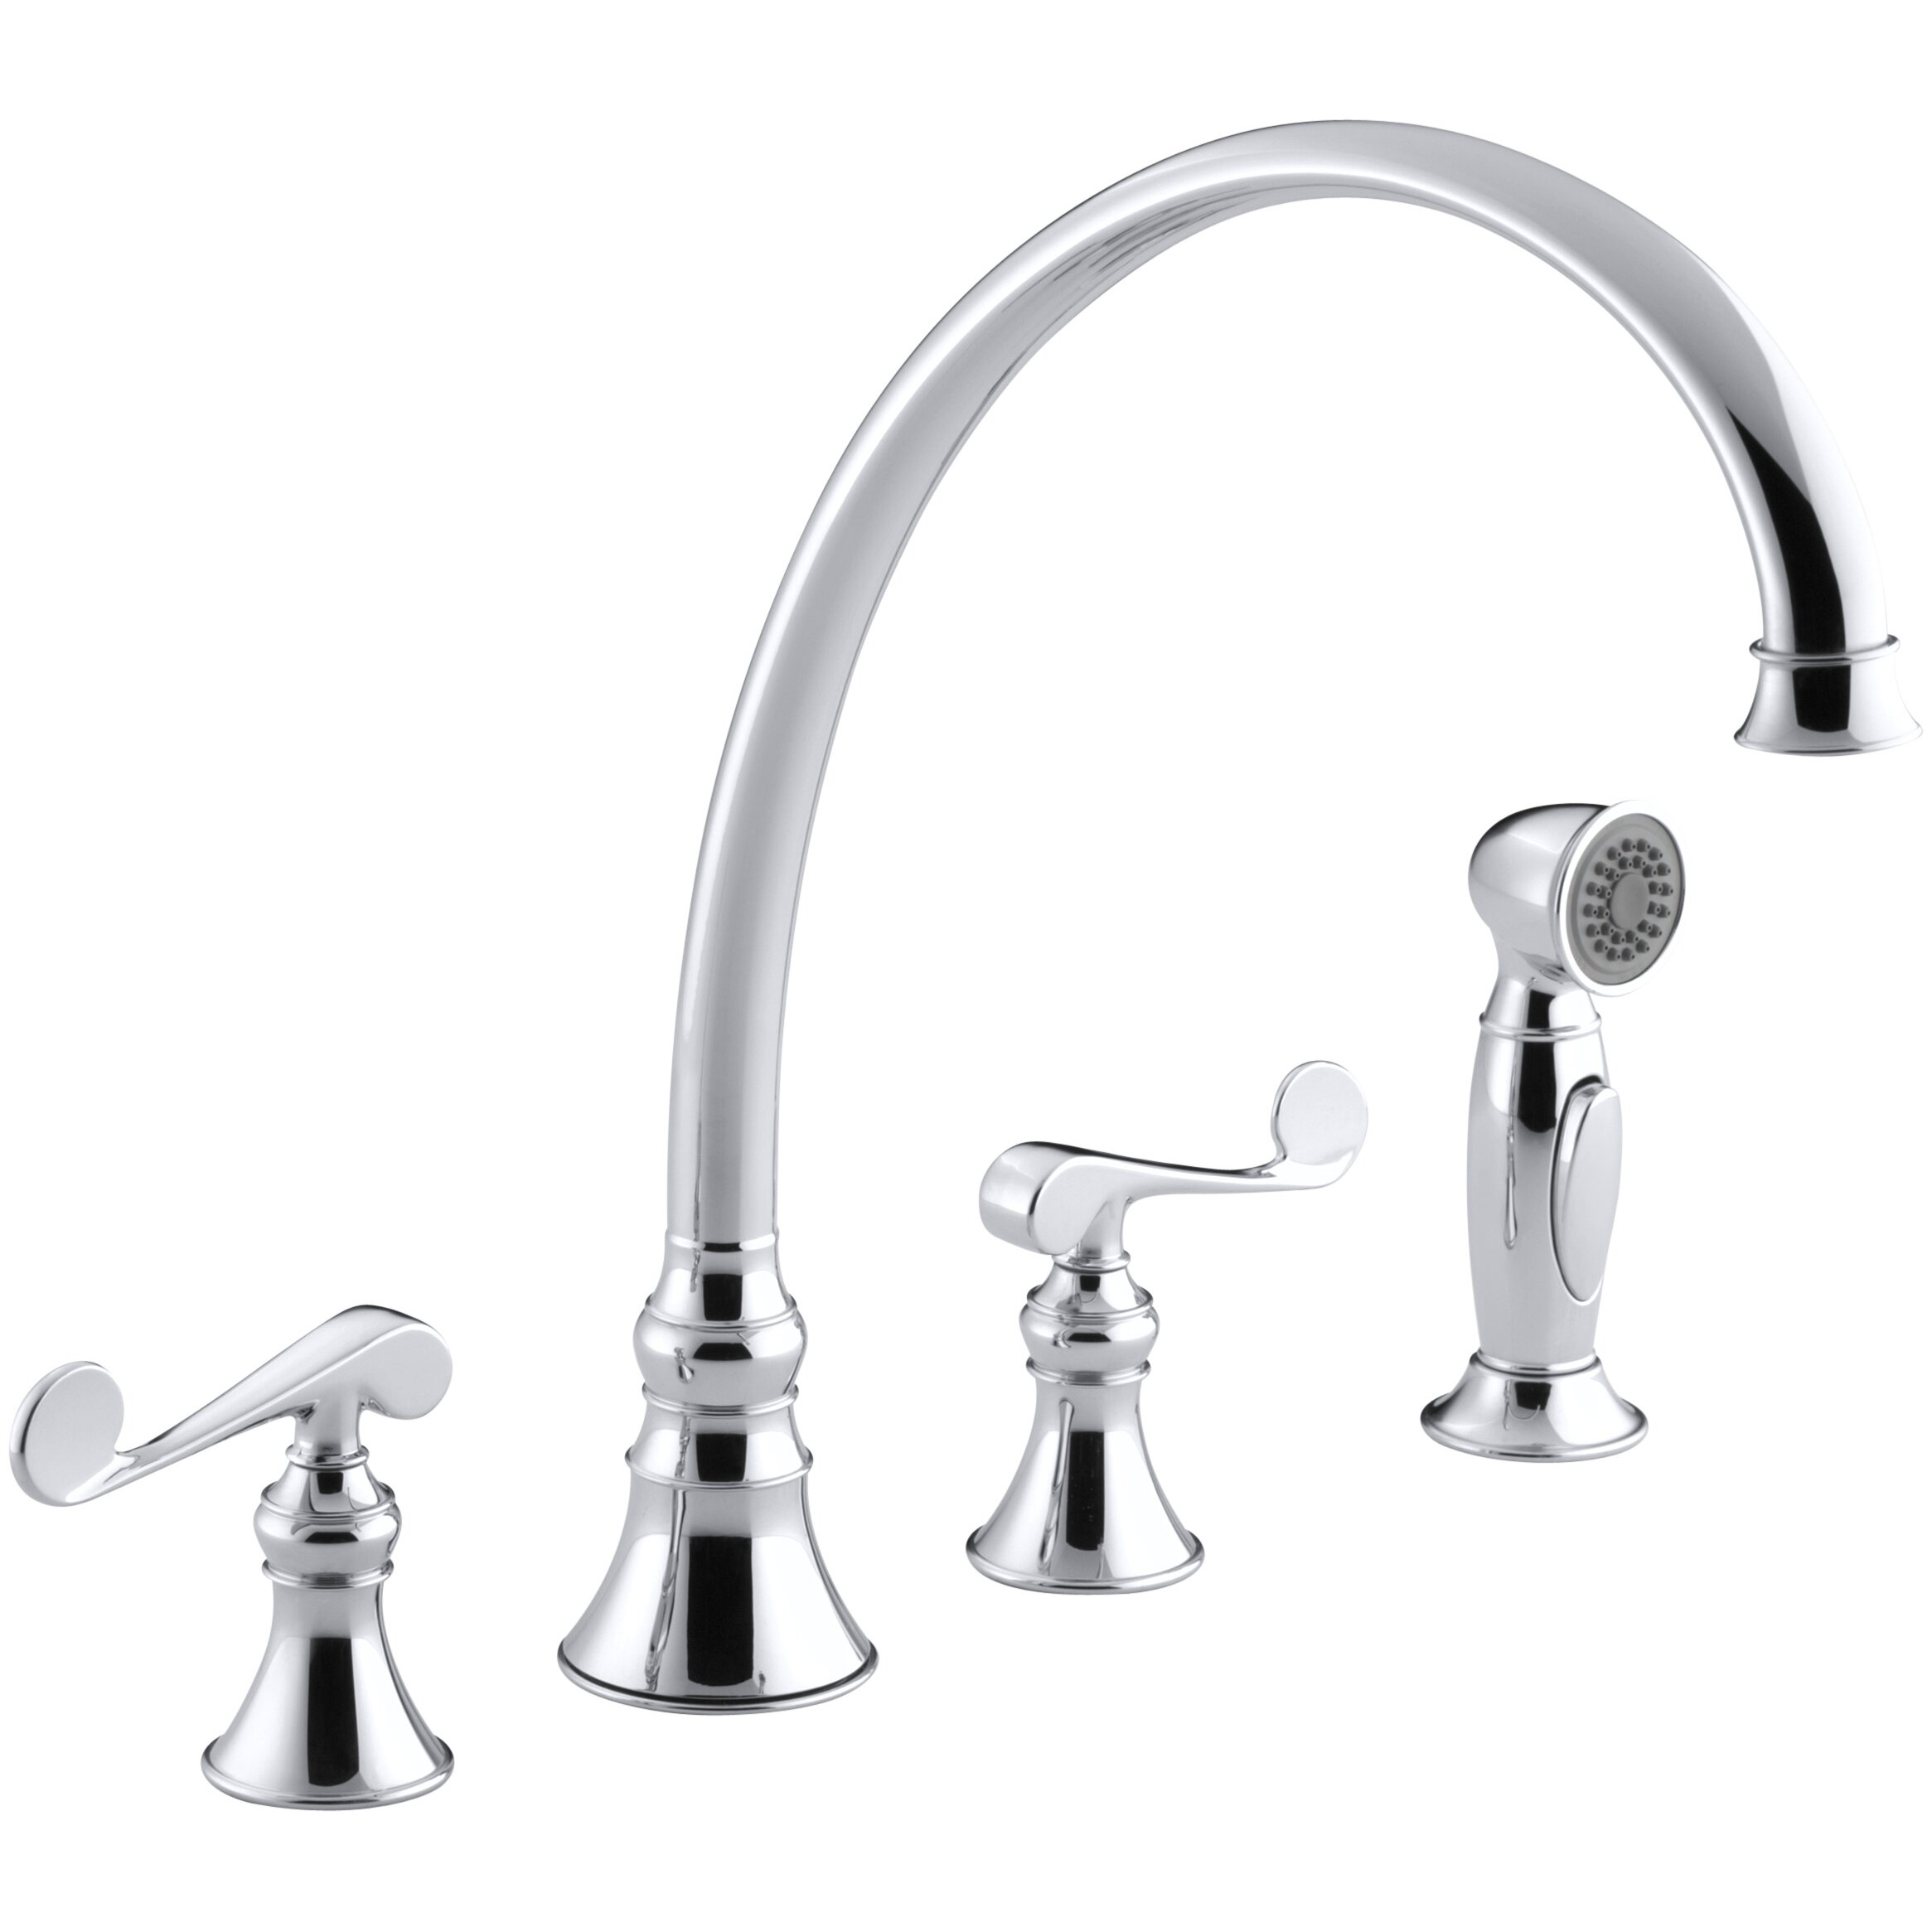 4 hole kitchen sink faucet kohler revival 4 hole kitchen sink faucet with 11 13 16 quot spout matching finish sidespray and 6196